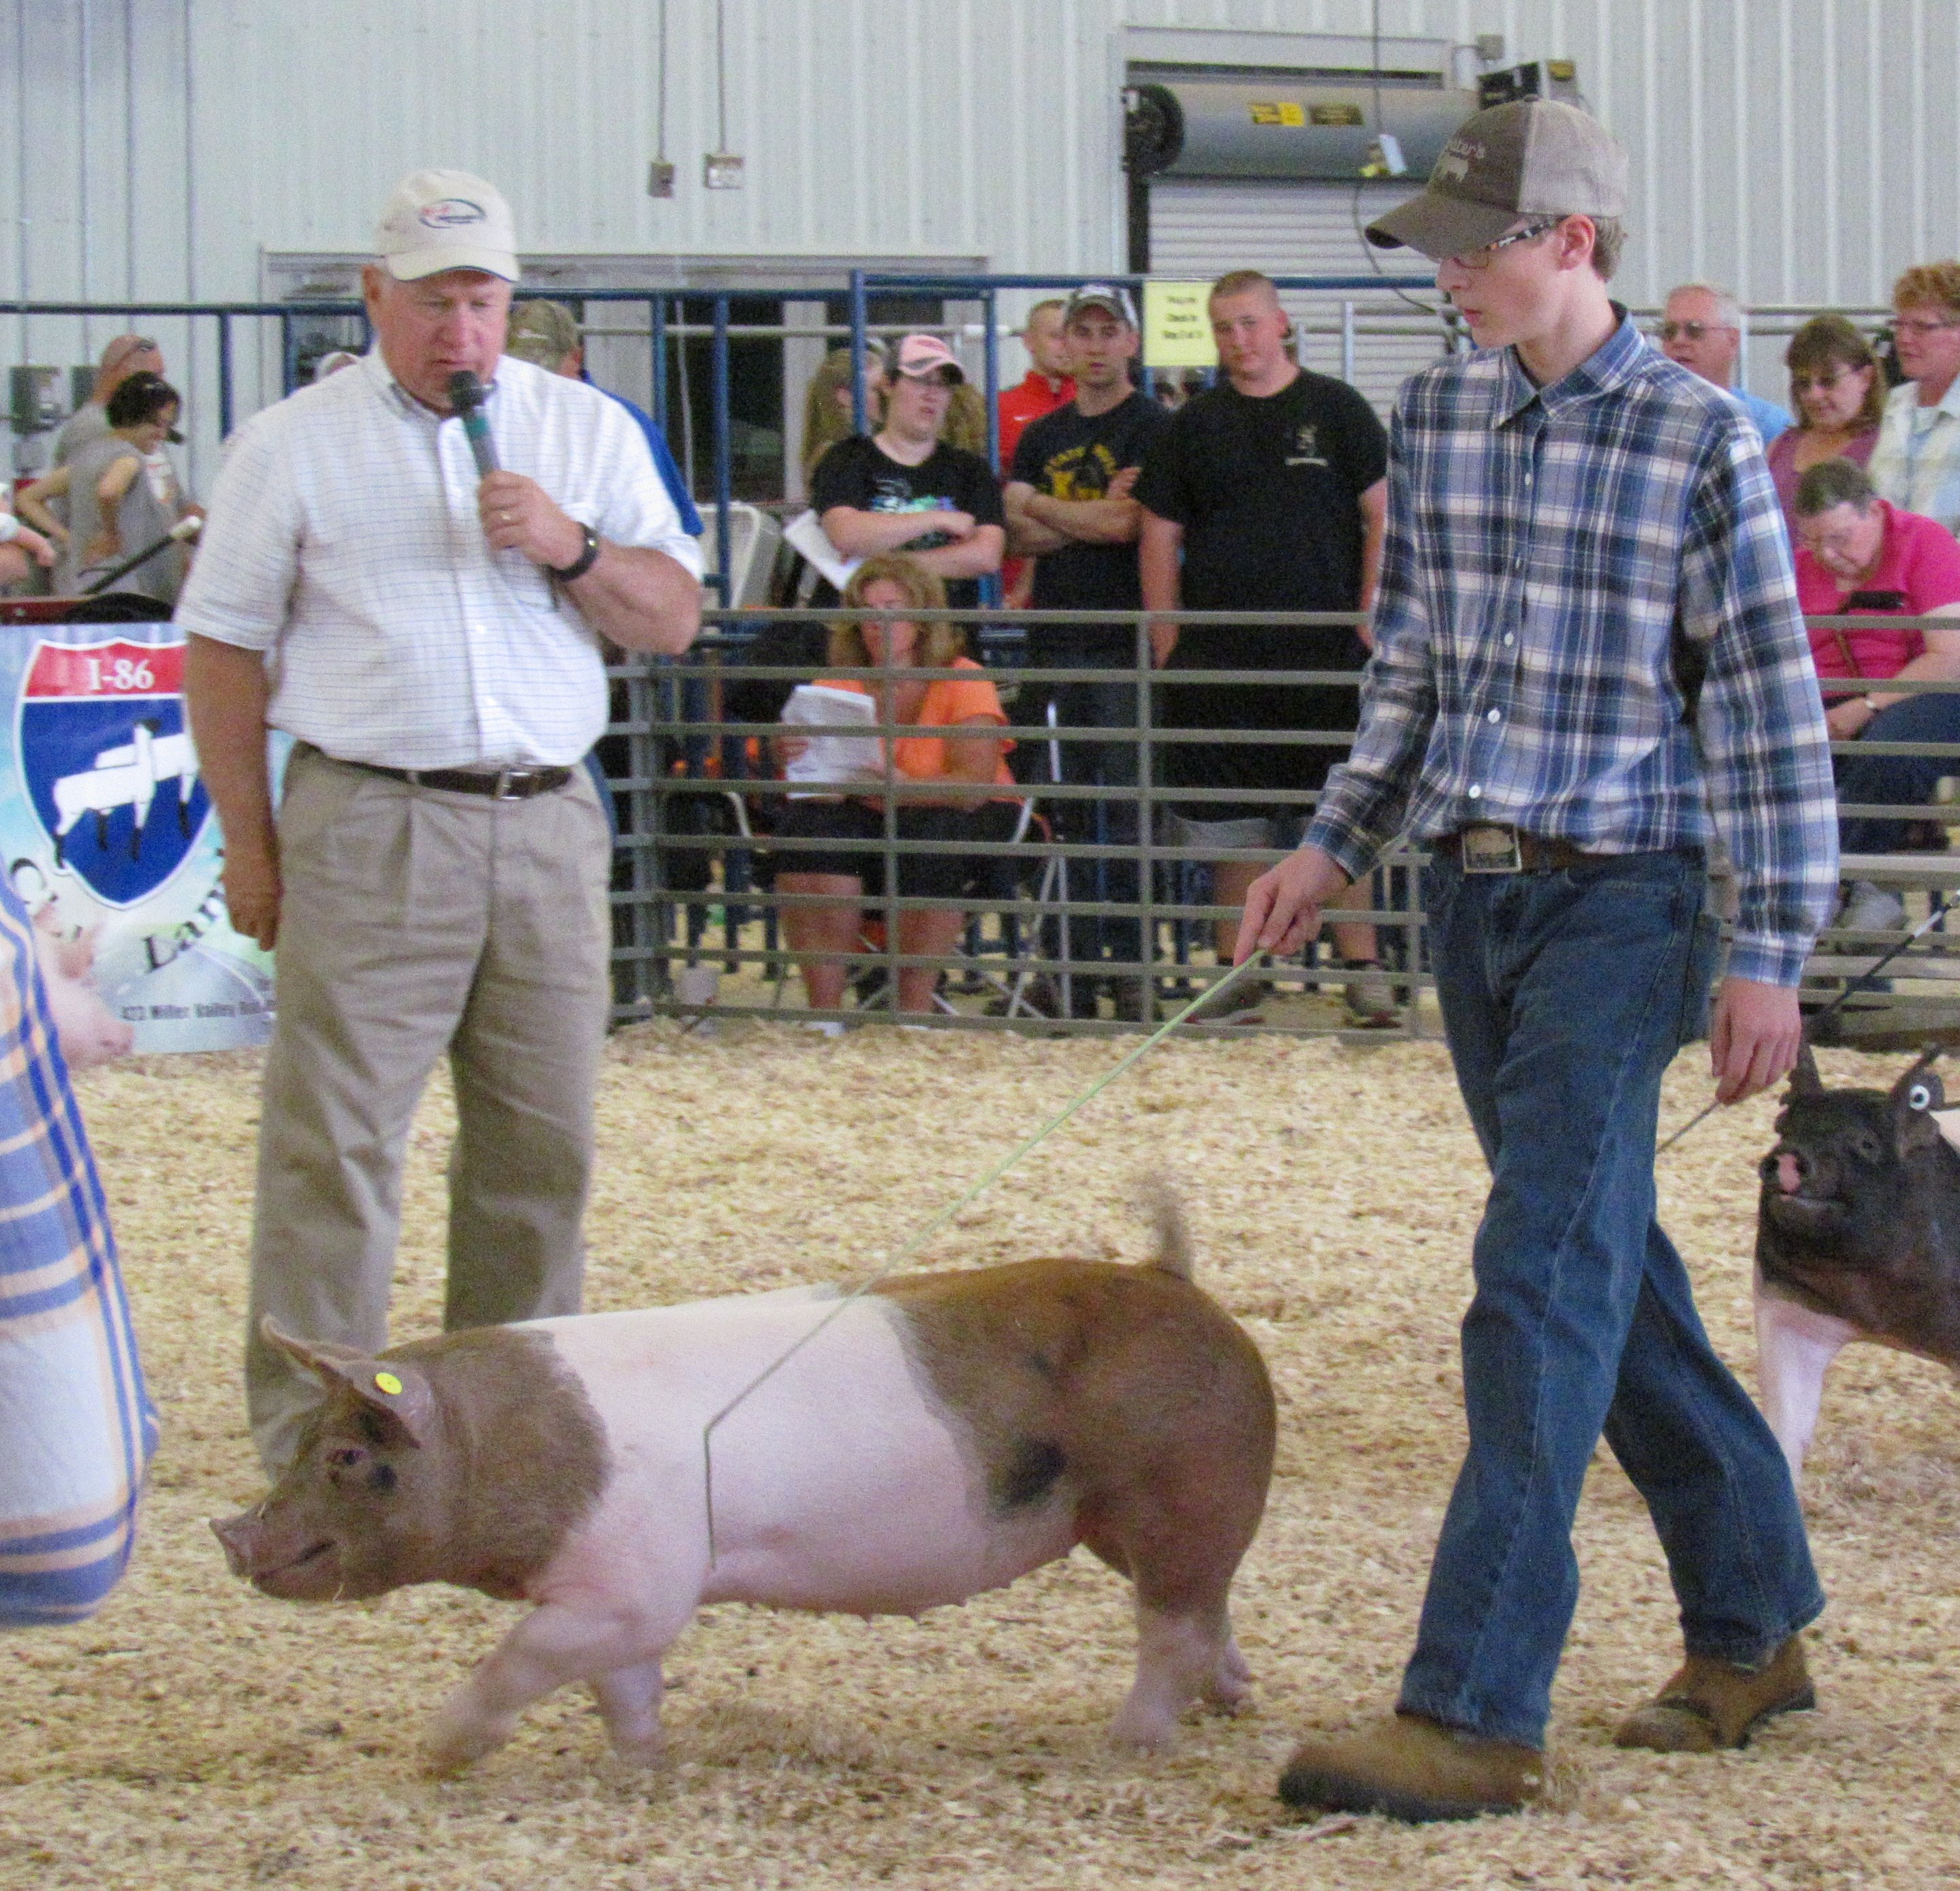 Mertz Family Western New York Hog & Lamb Preview Classic: Show 1 - 2nd, 5th and 7th in class Show 2 - 3rd, 4th and 7th in class